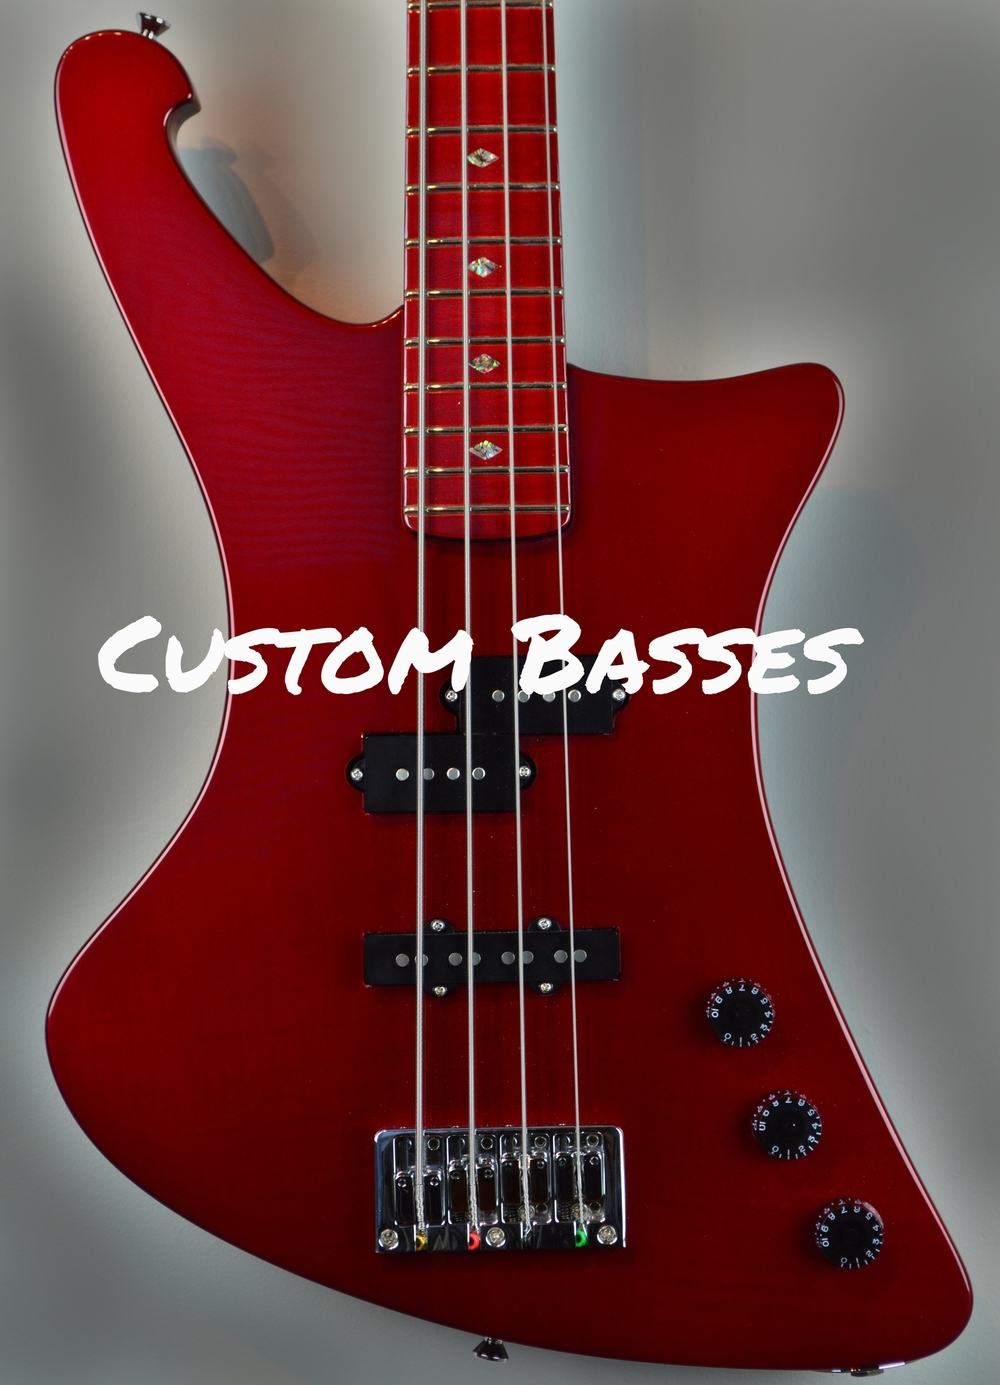 custombasses.jpg